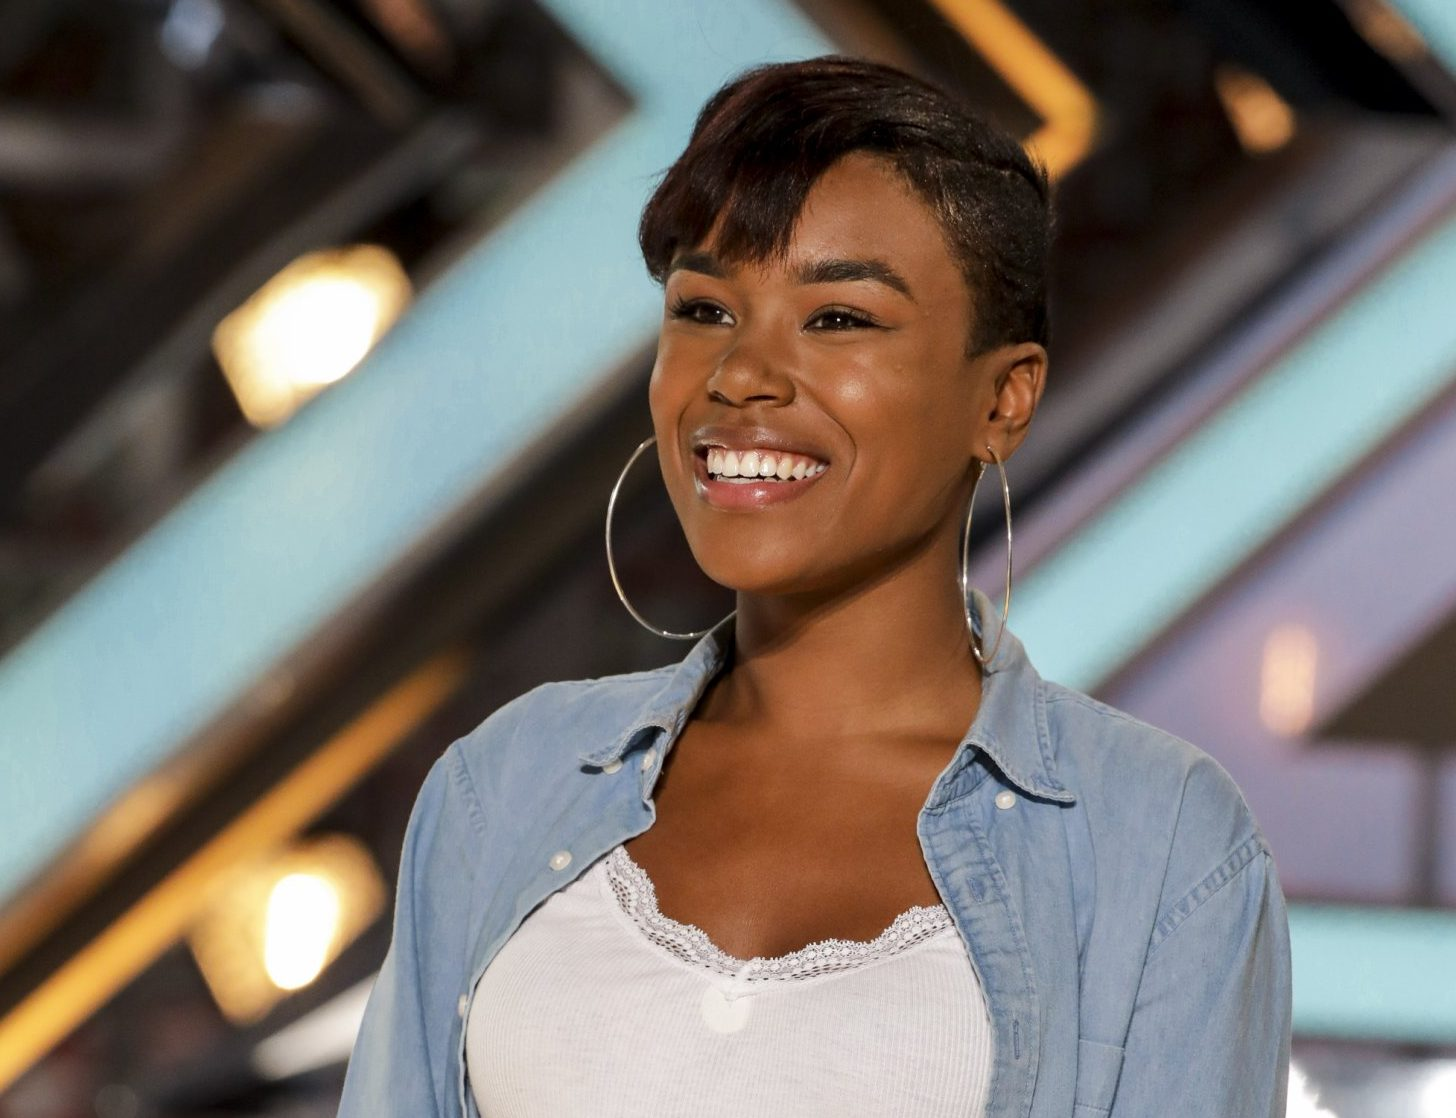 EMBARGOED UNTIL 00:01 SUNDAY 10TH SEPTEMBER 2017 Mandatory Credit: Photo by Dymond/Thames/Syco/REX/Shutterstock (9048391x) Deanna 'The X Factor' TV show, UK - 10 Sep 2017 DEANNA - 22-year-old musician from Anguilla, a British colony in the Caribbean. [Whitney Houston - I Have Nothing]